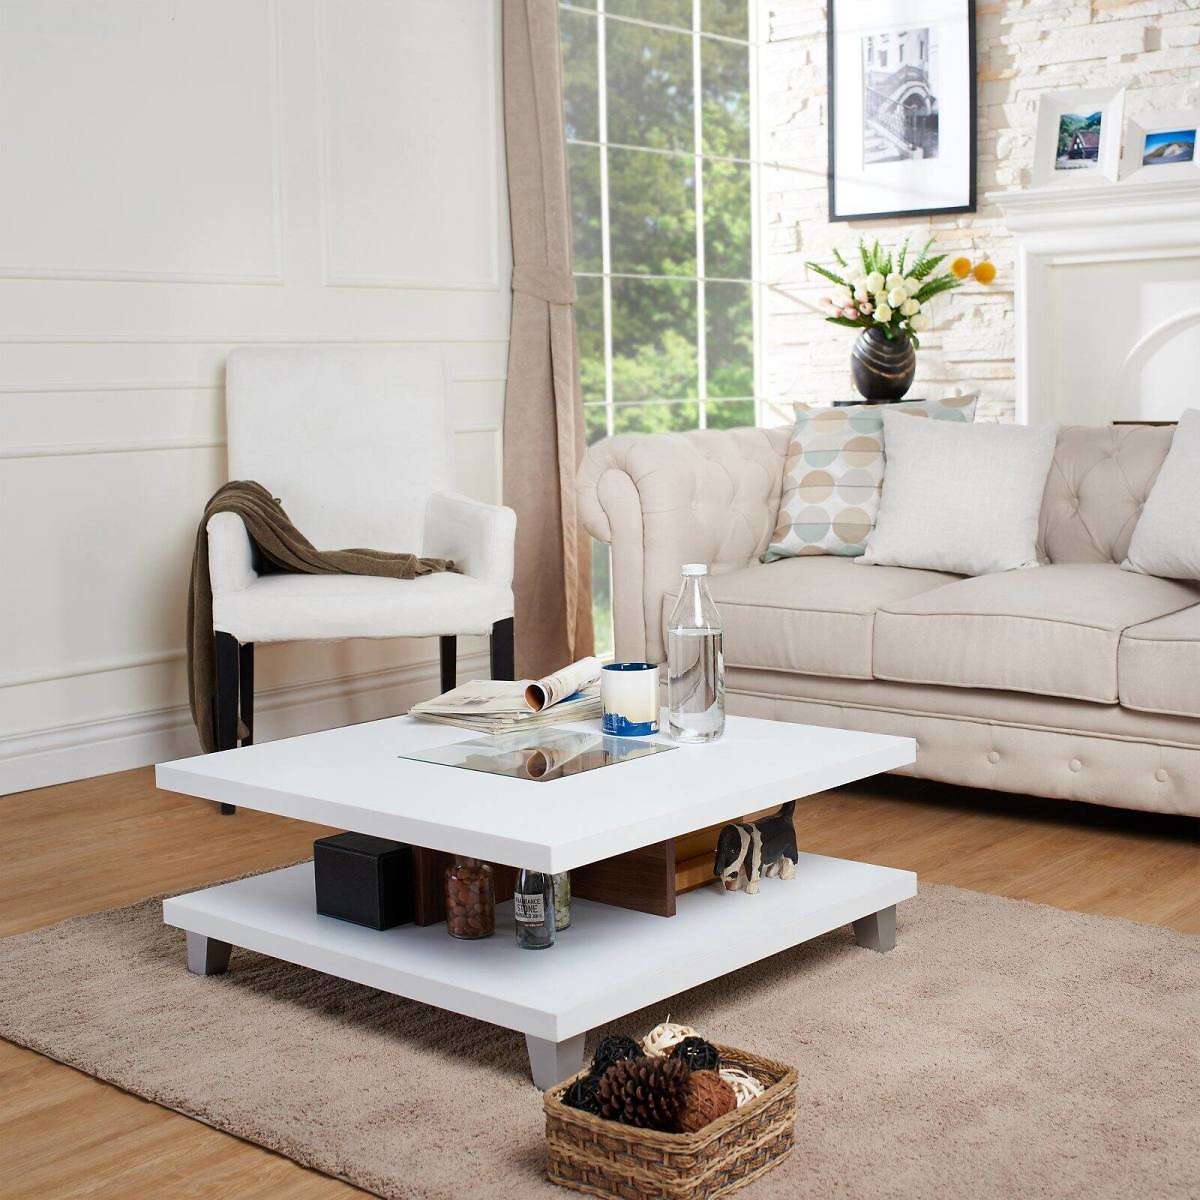 Furniture of America Panamera White and Walnut 2-Leveled Coffee Table